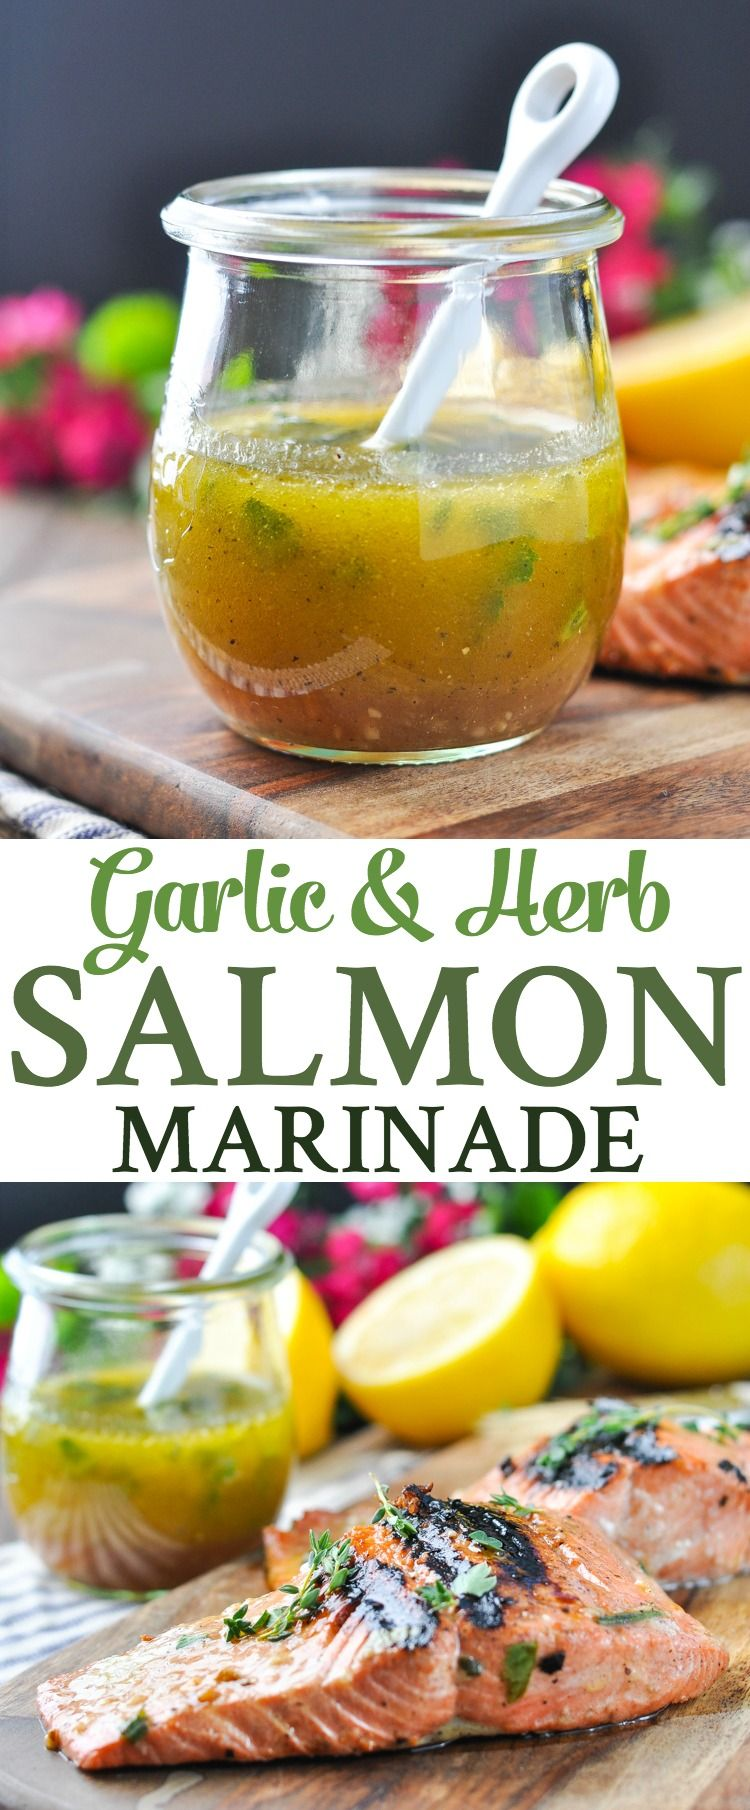 Garlic and Herb Salmon Marinade #grillingrecipes